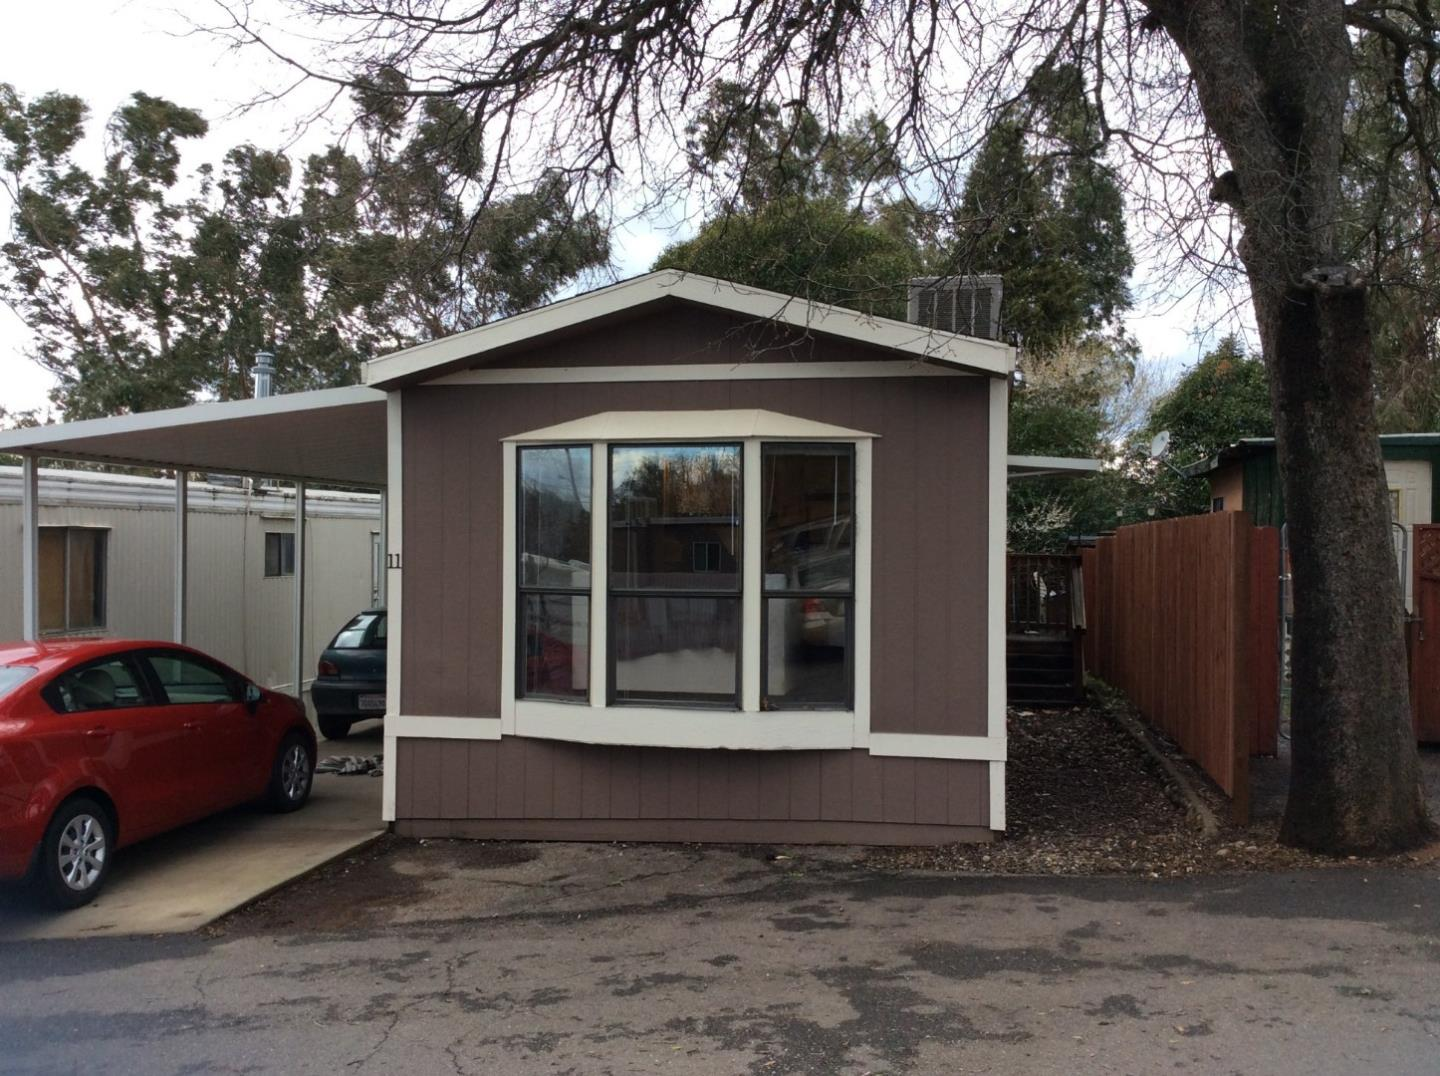 Casa Unifamiliar por un Venta en 20480 River Valley Drive 20480 River Valley Drive Anderson, California 96007 Estados Unidos